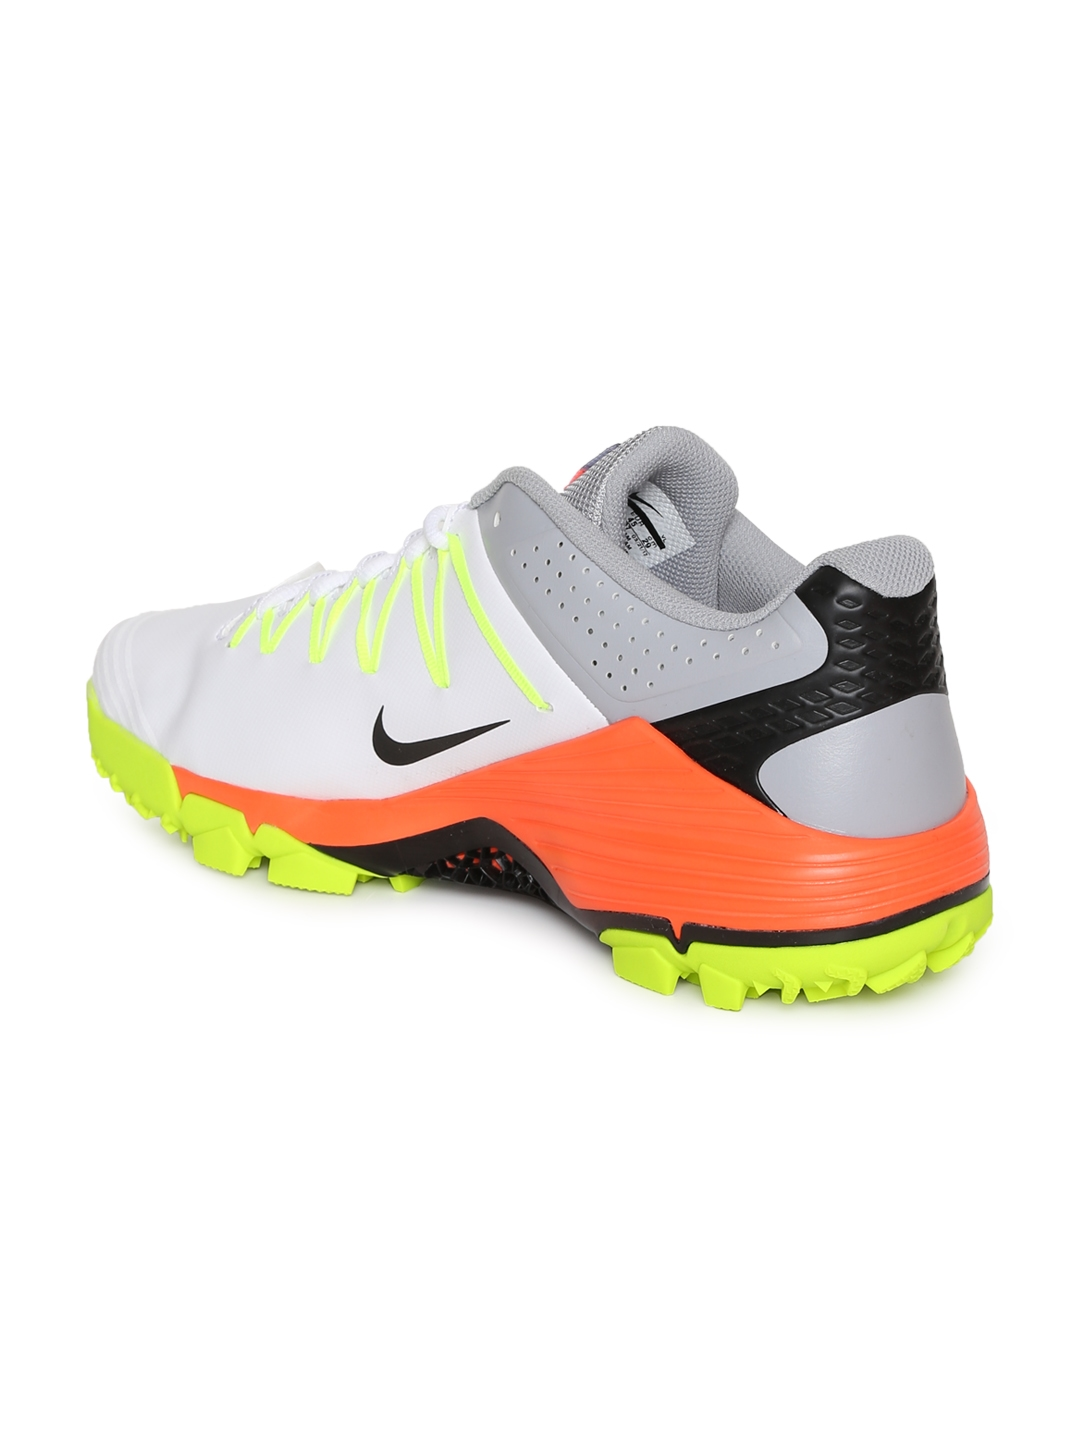 hot sale online b4fd3 5b663 Nike Men White Domain 2 Cricket Shoes